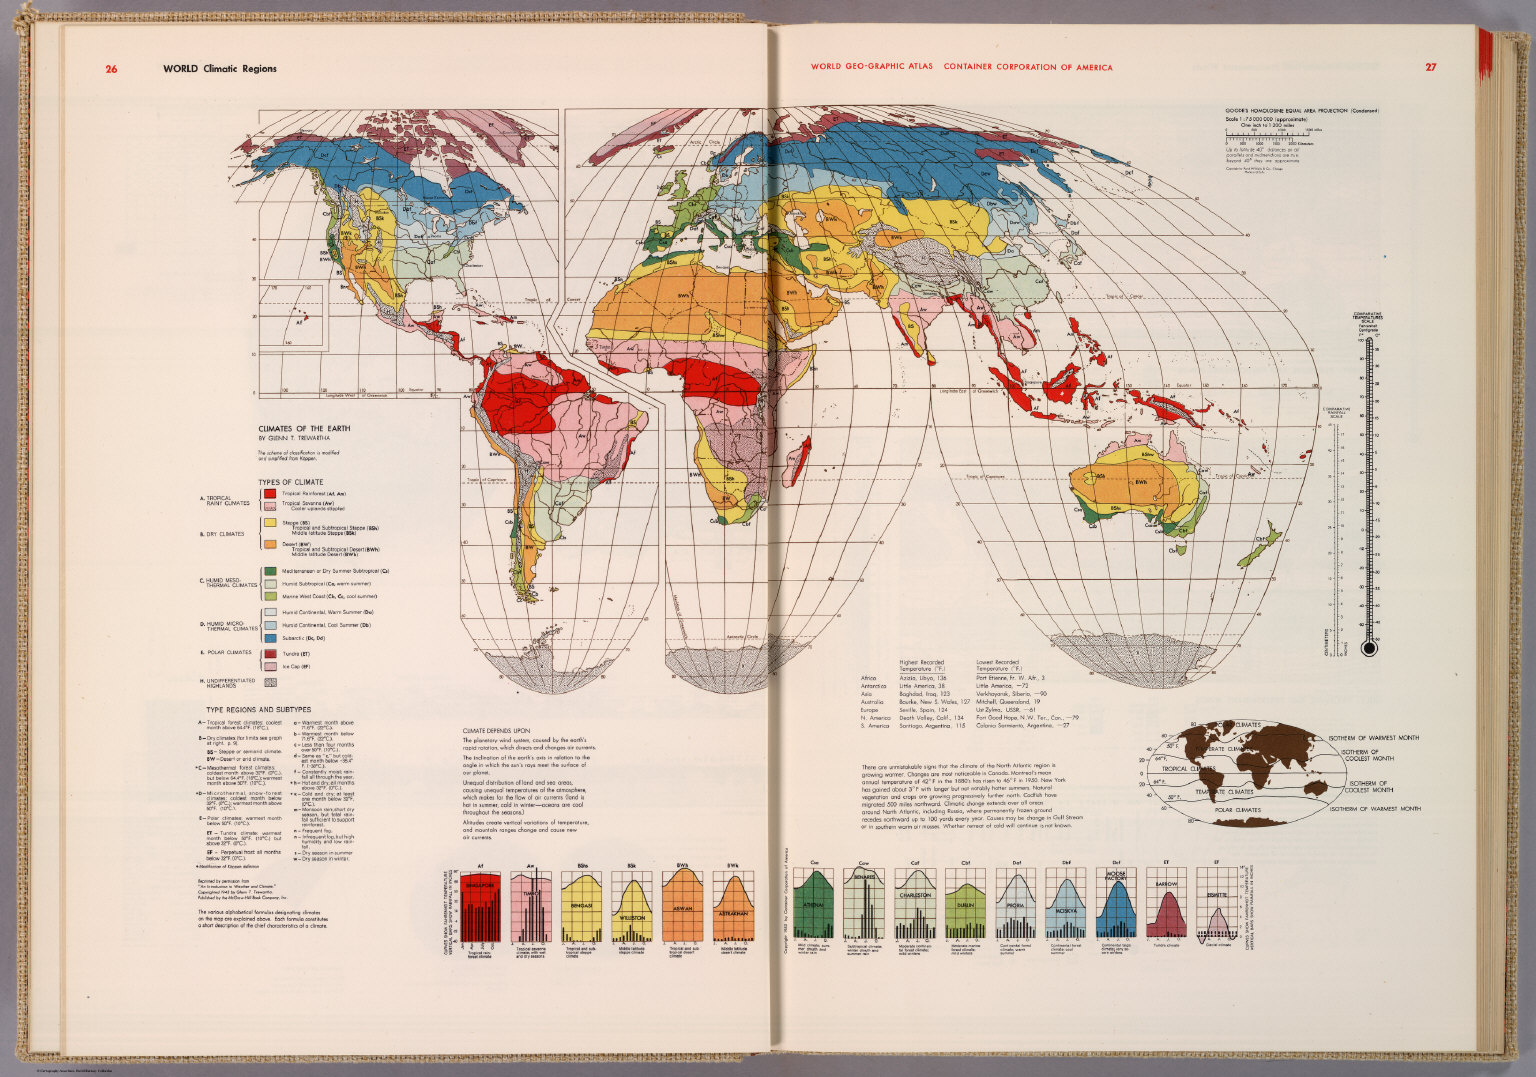 World climatic regions david rumsey historical map collection world climatic regions gumiabroncs Gallery